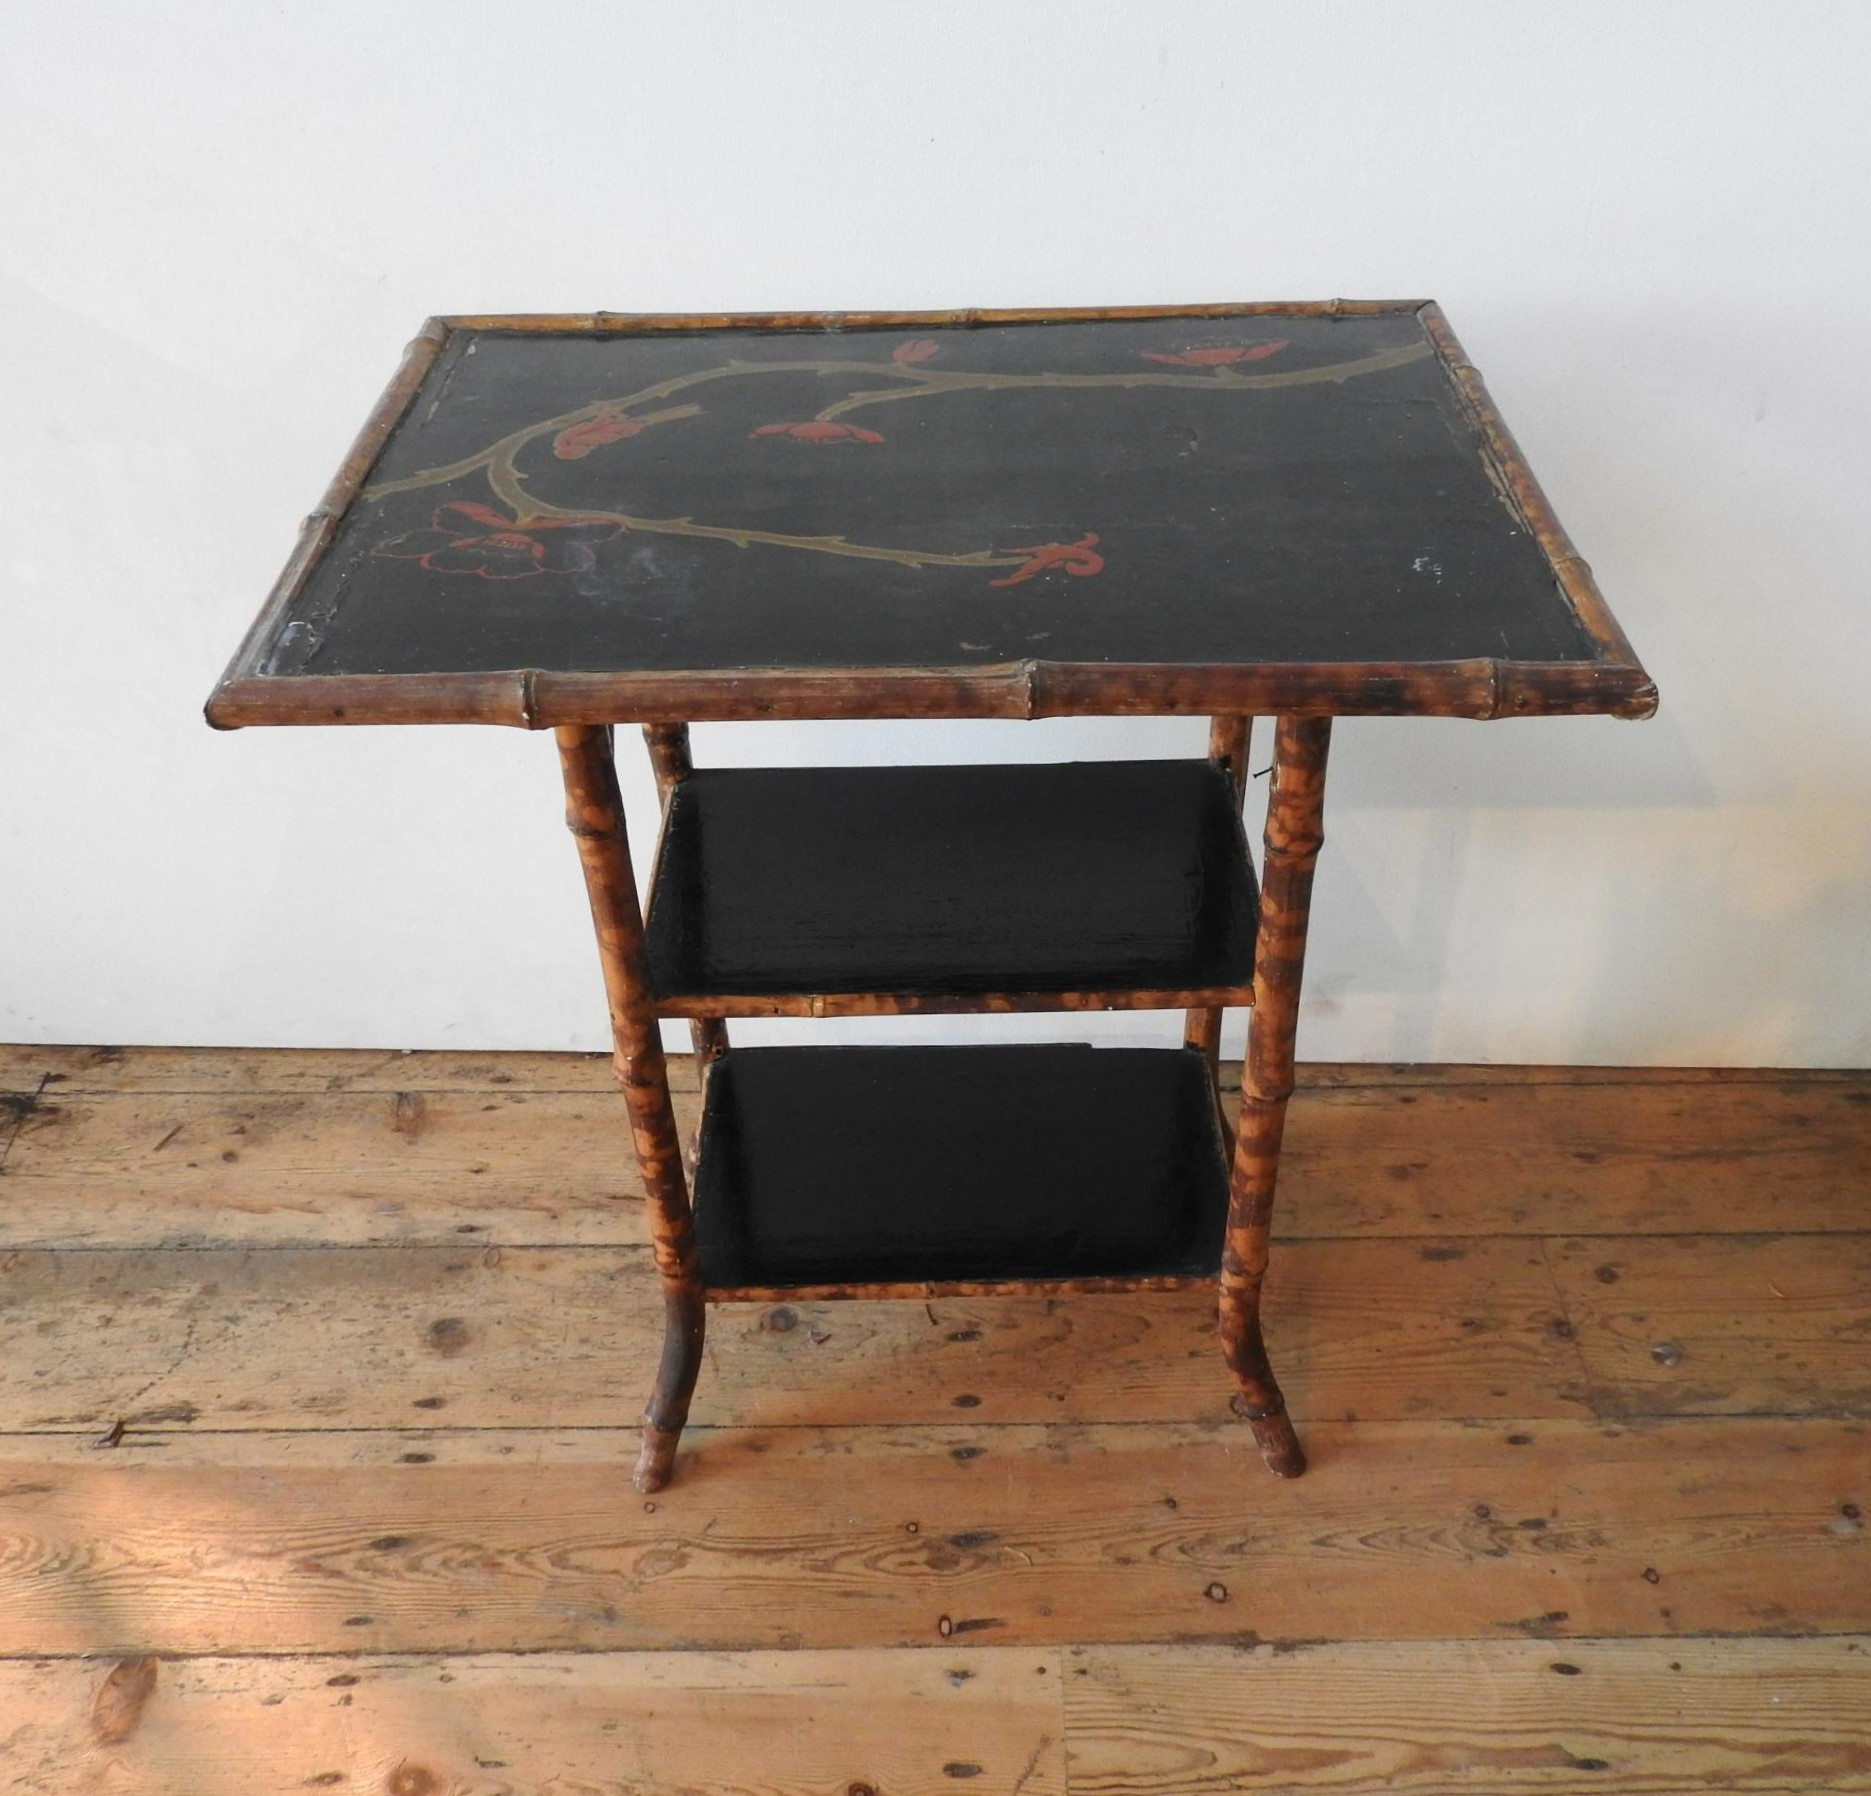 A VICTORIAN LACQUERED BAMBOO THREE TIER OCCASIONAL TABLE, 73 x 65 x 45 cm